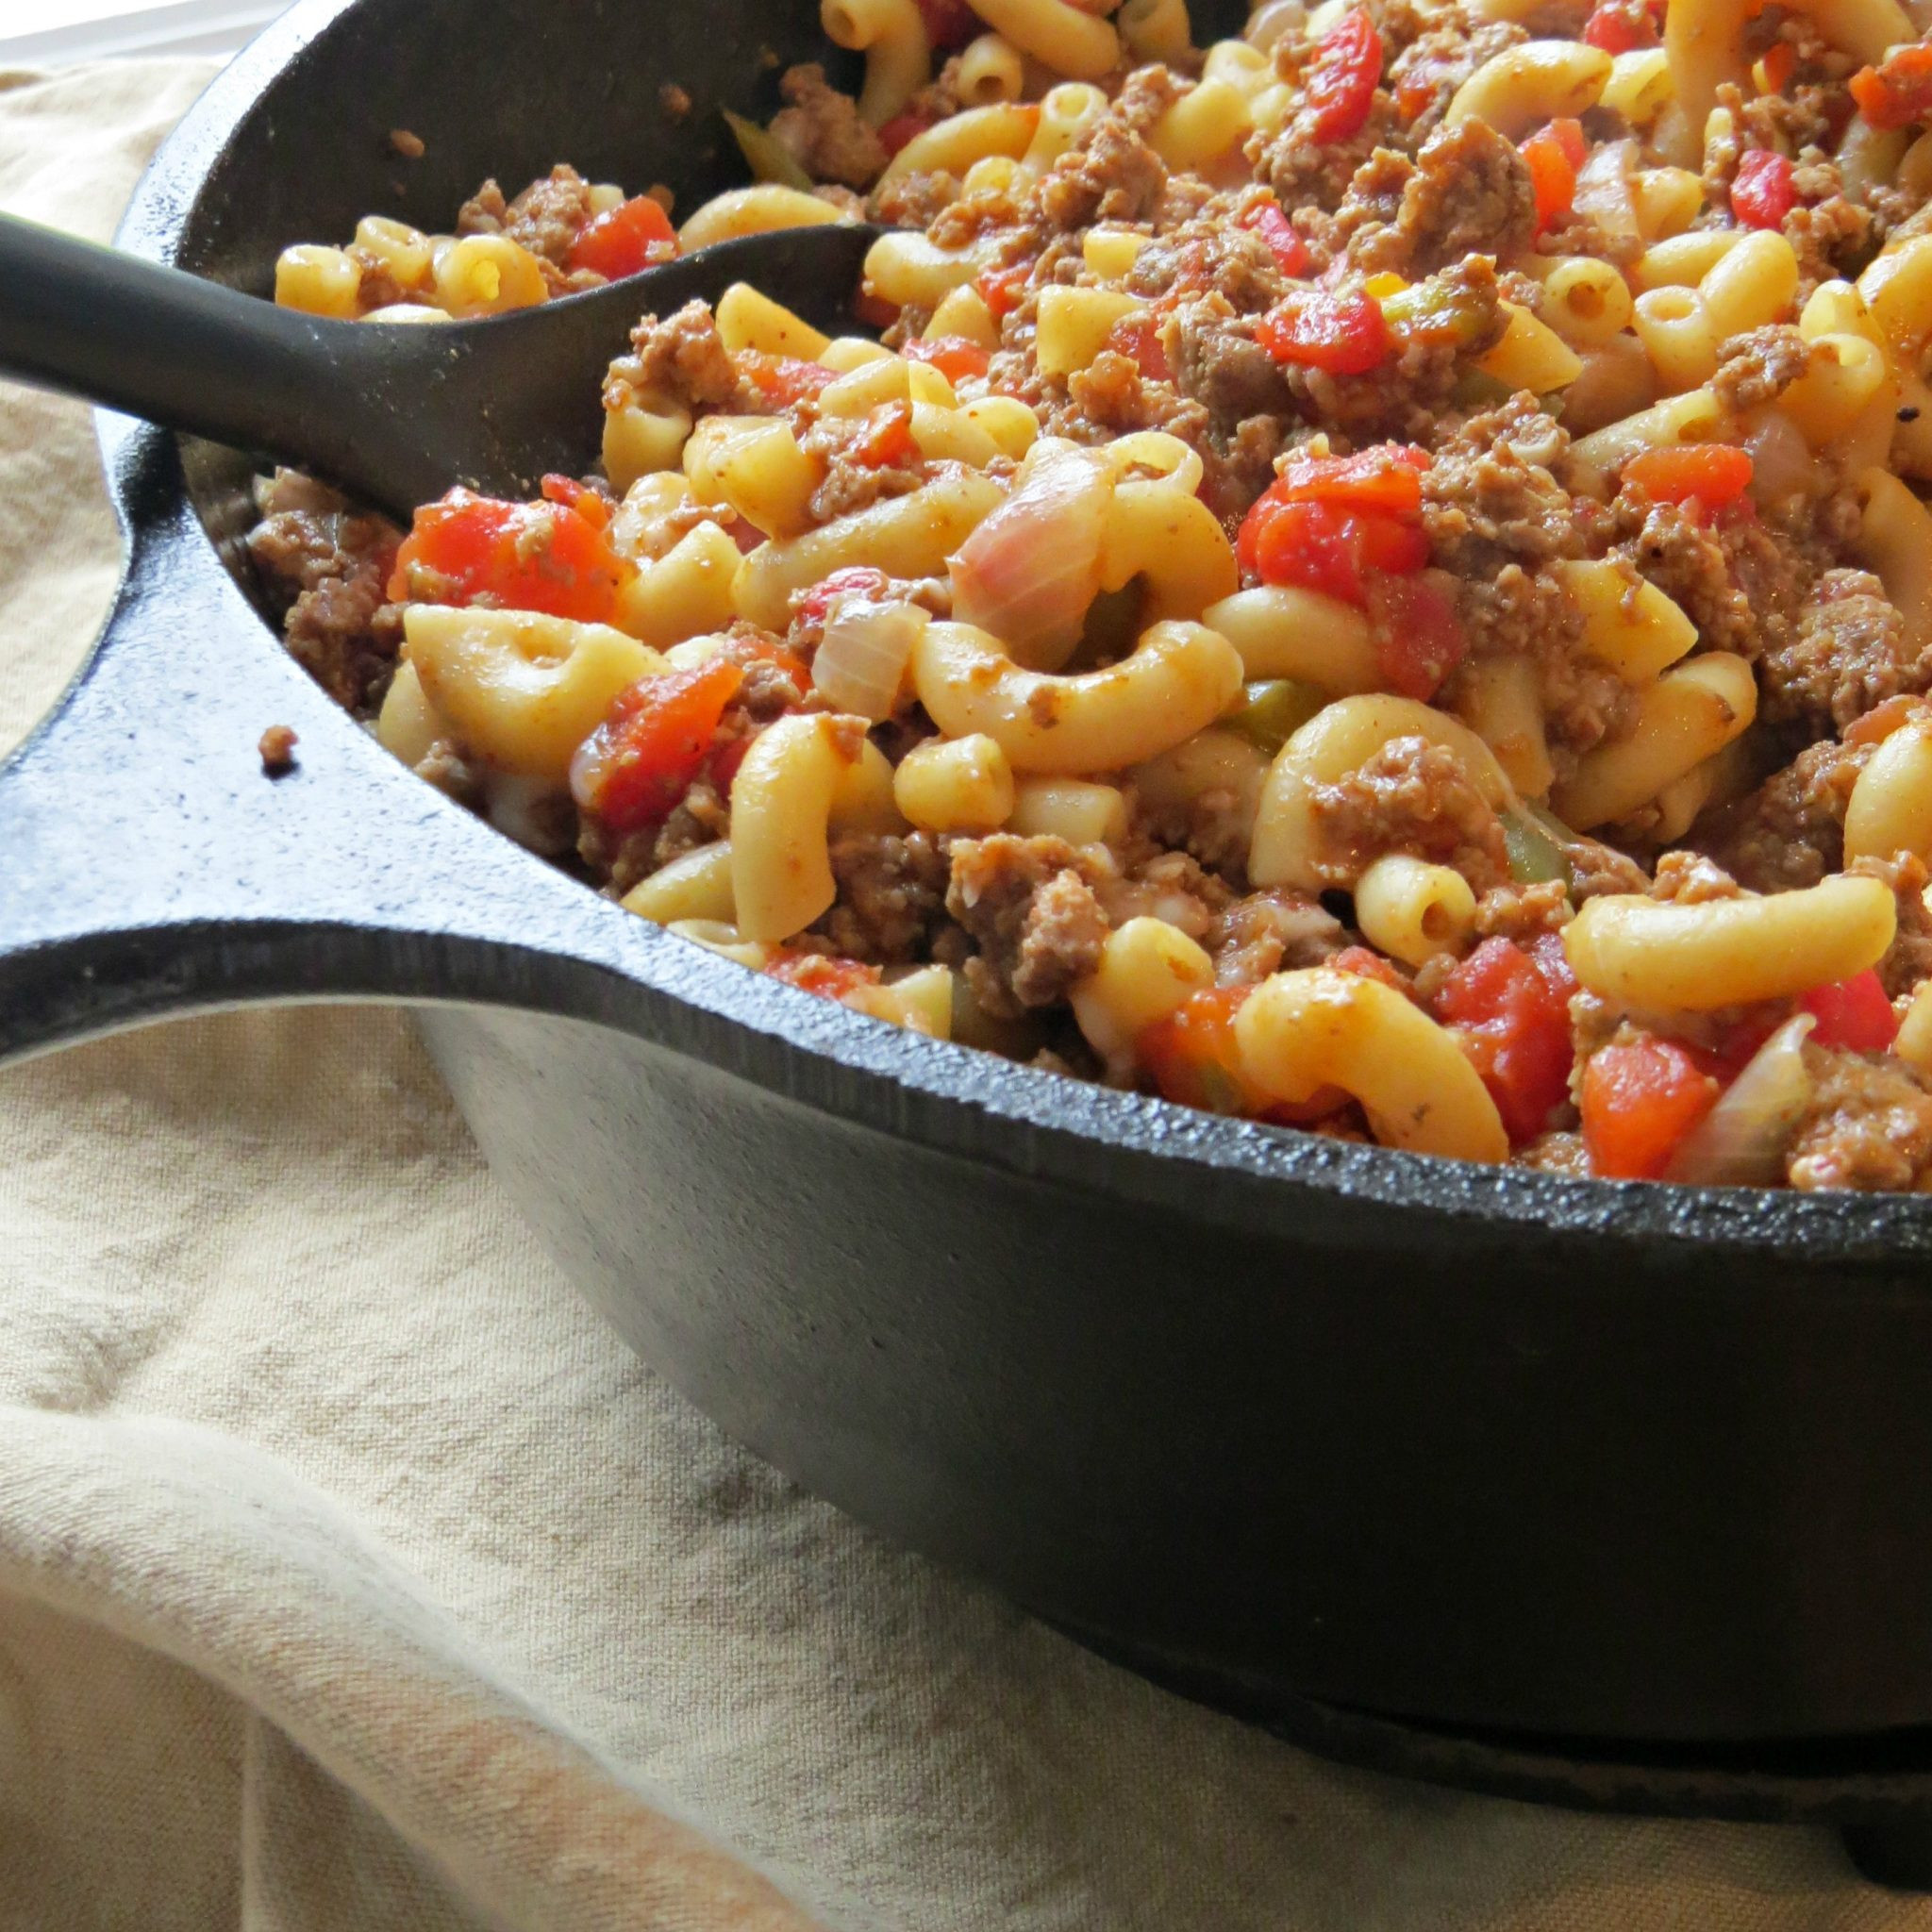 Ground Beef Pasta Casserole Recipes  This Ground Beef Pasta Casserole is a family favorite